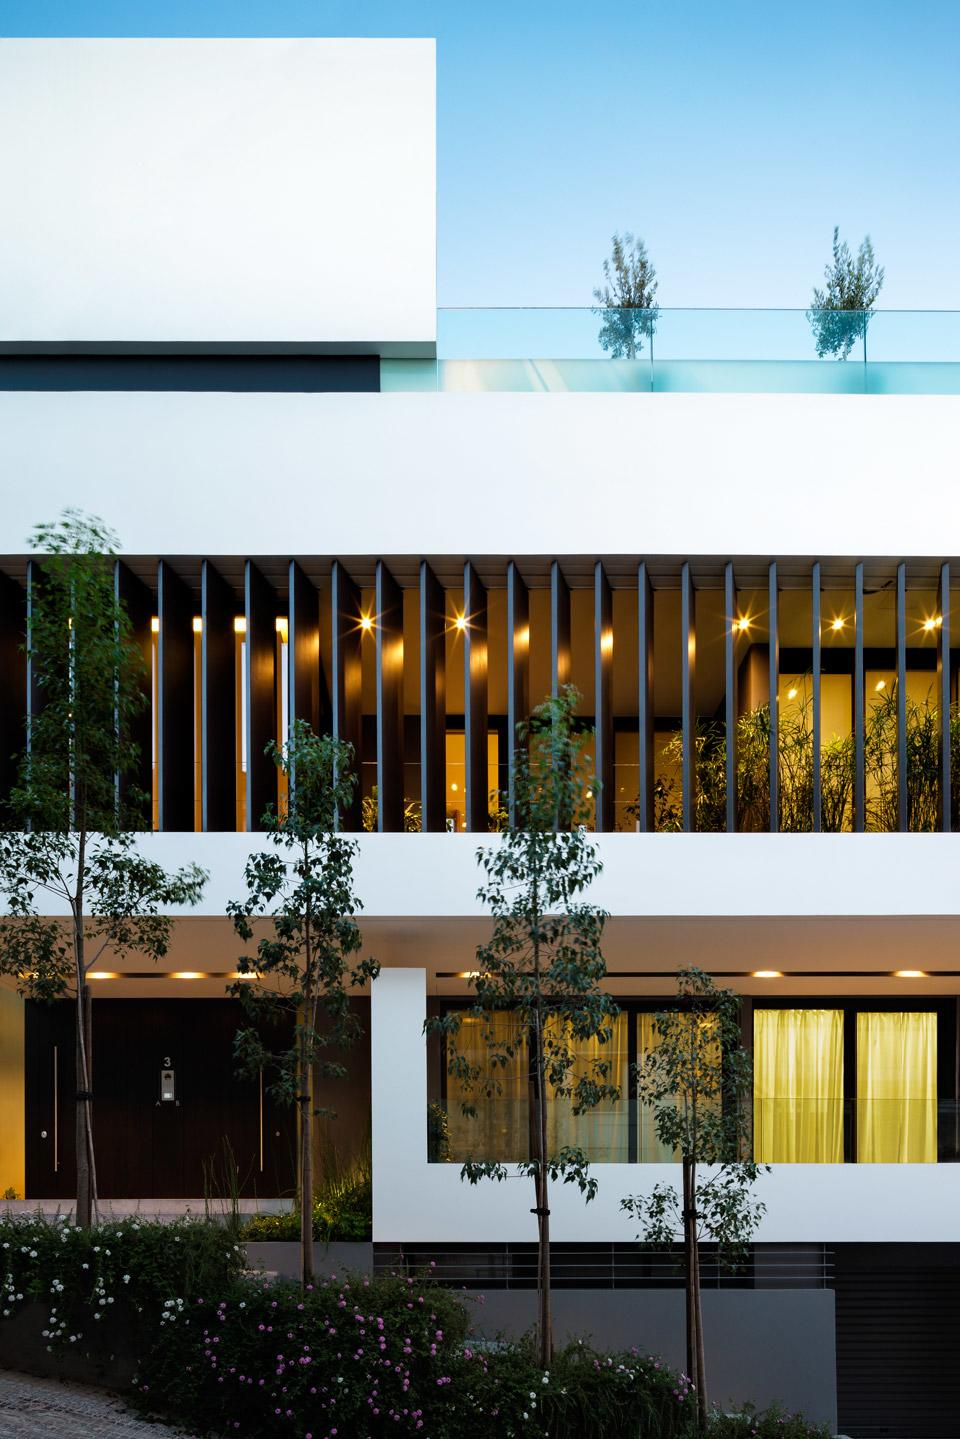 Sias-blog-ISV-Architects-Filopappou_6